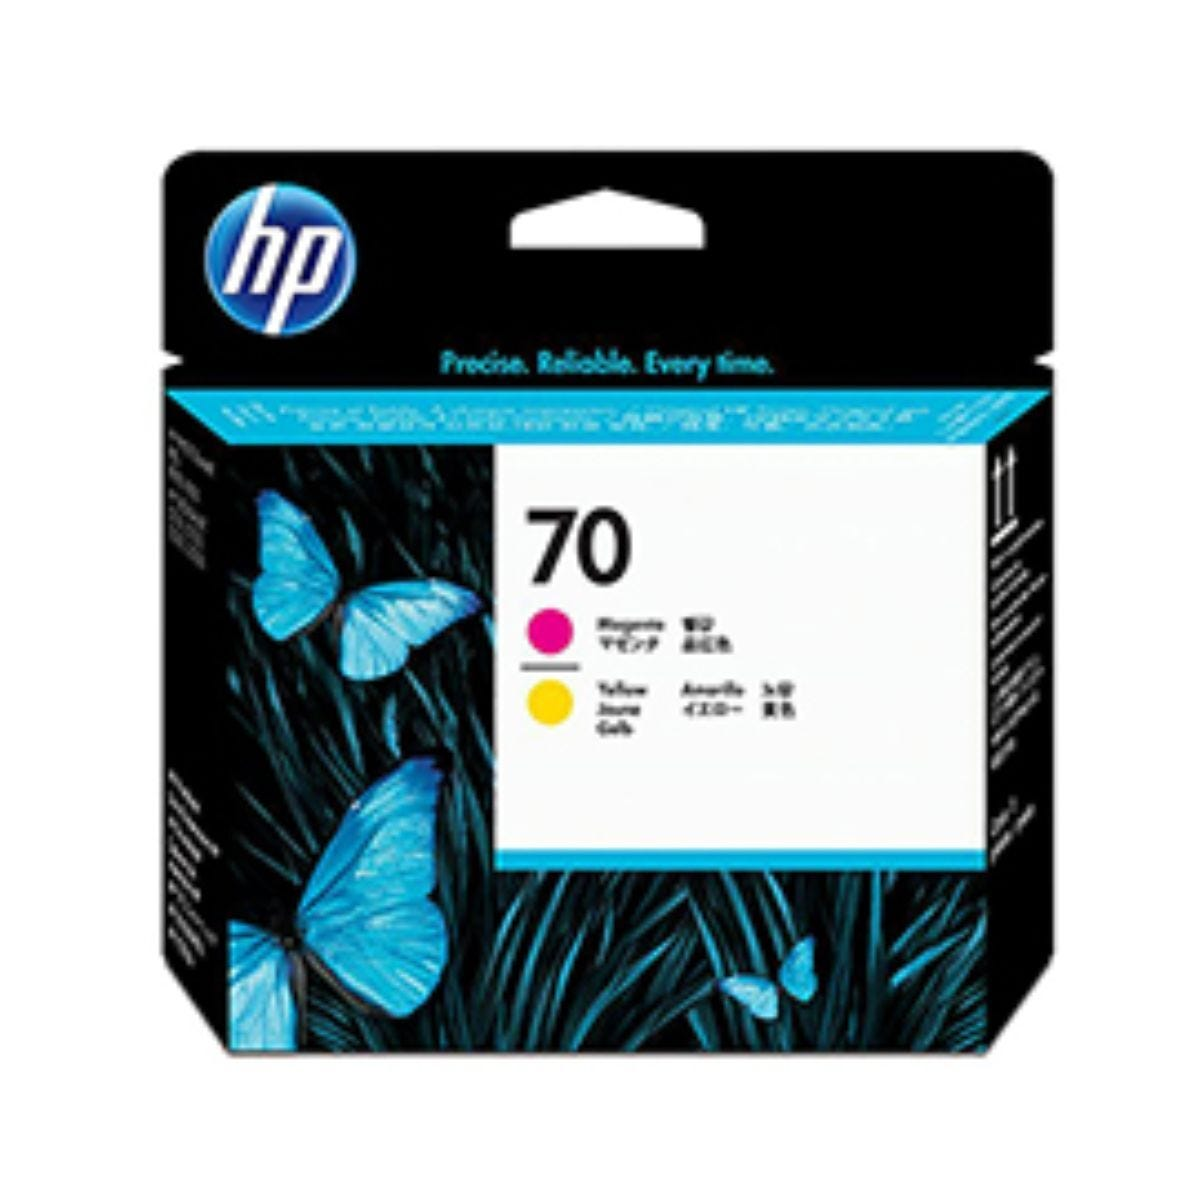 HP 70 Ink Cartridge Magenta/Yellow